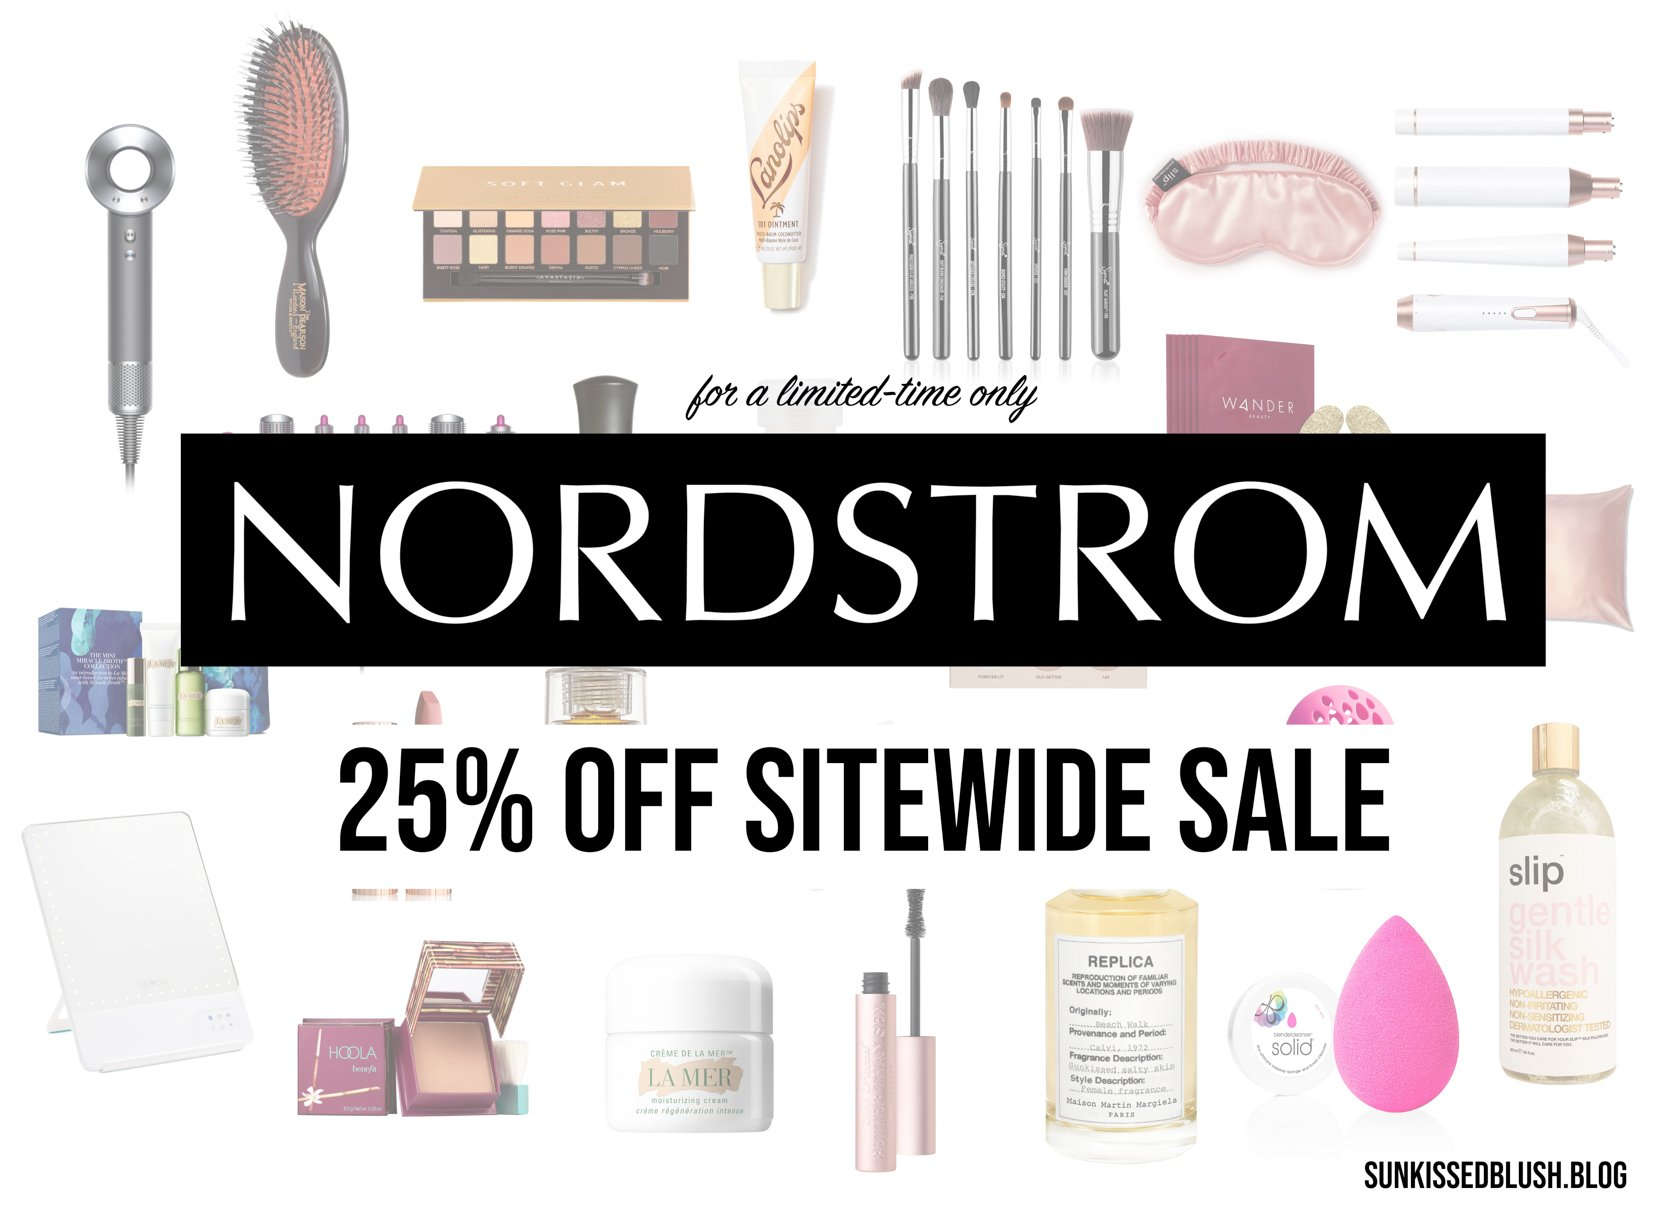 Nordstrom sale featured products